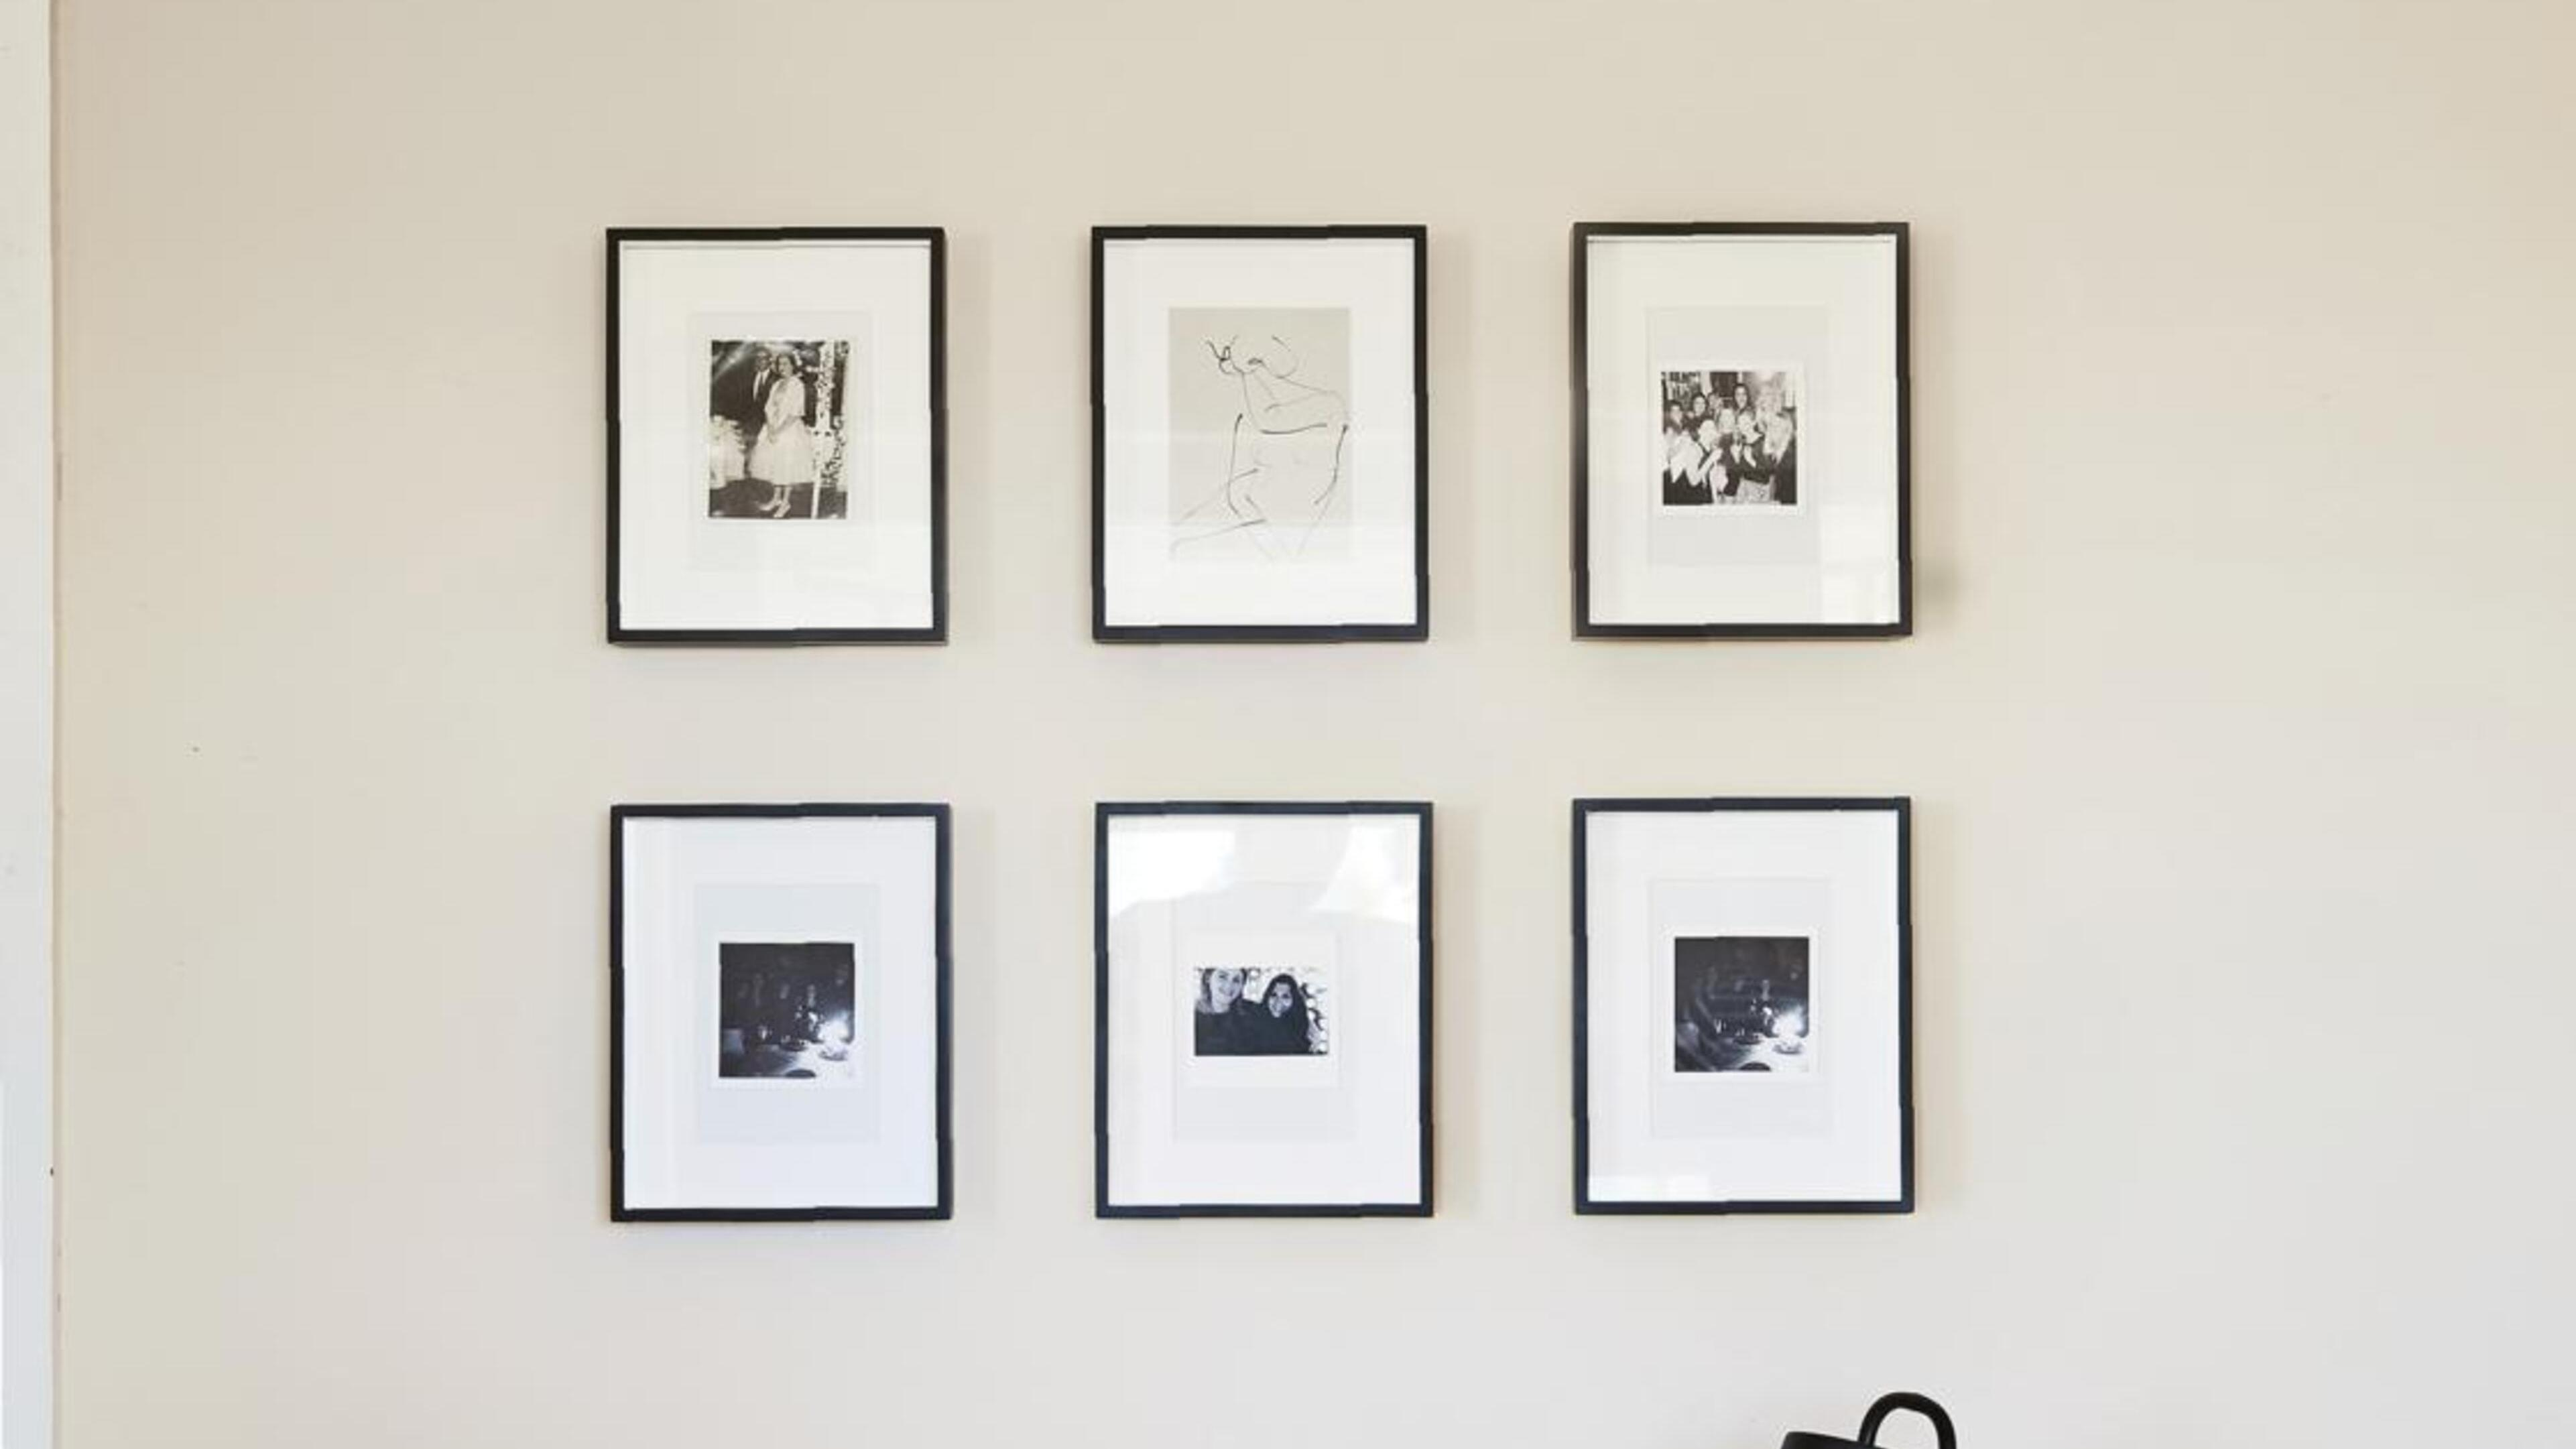 Six picture frames hanging on the wall